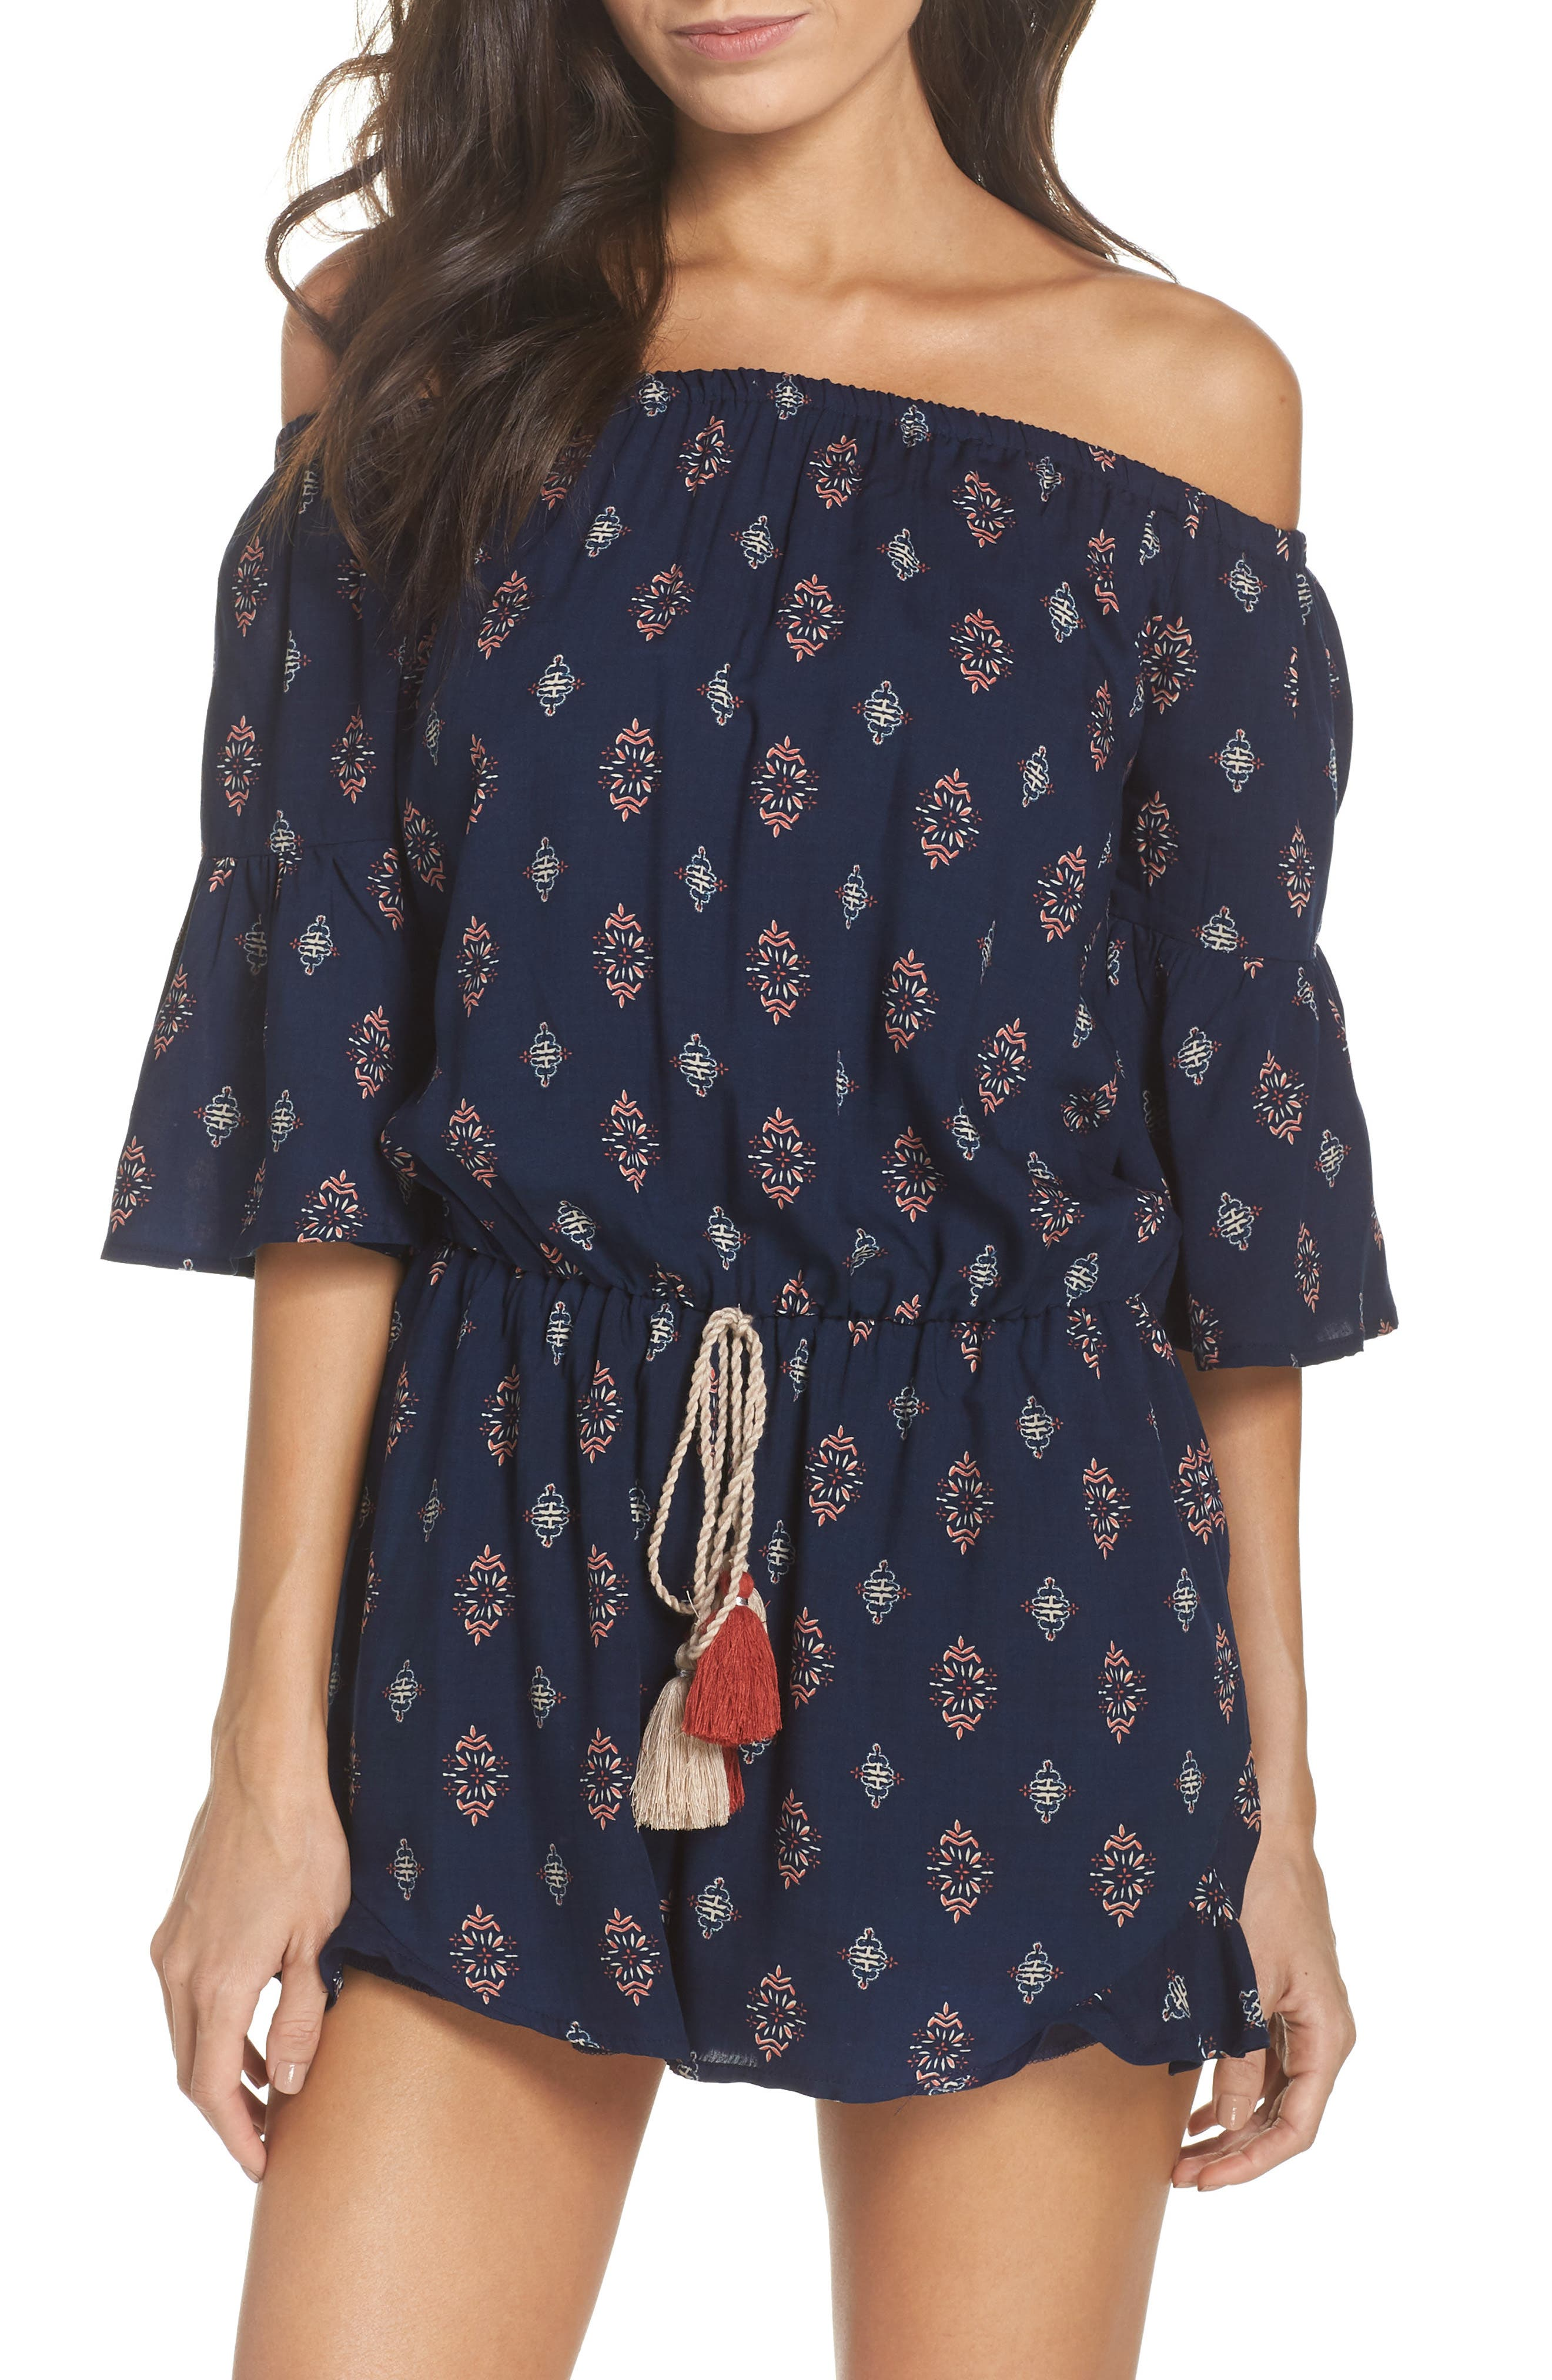 Off the Shoulder Cover-Up Romper,                             Main thumbnail 1, color,                             Navy Ornate